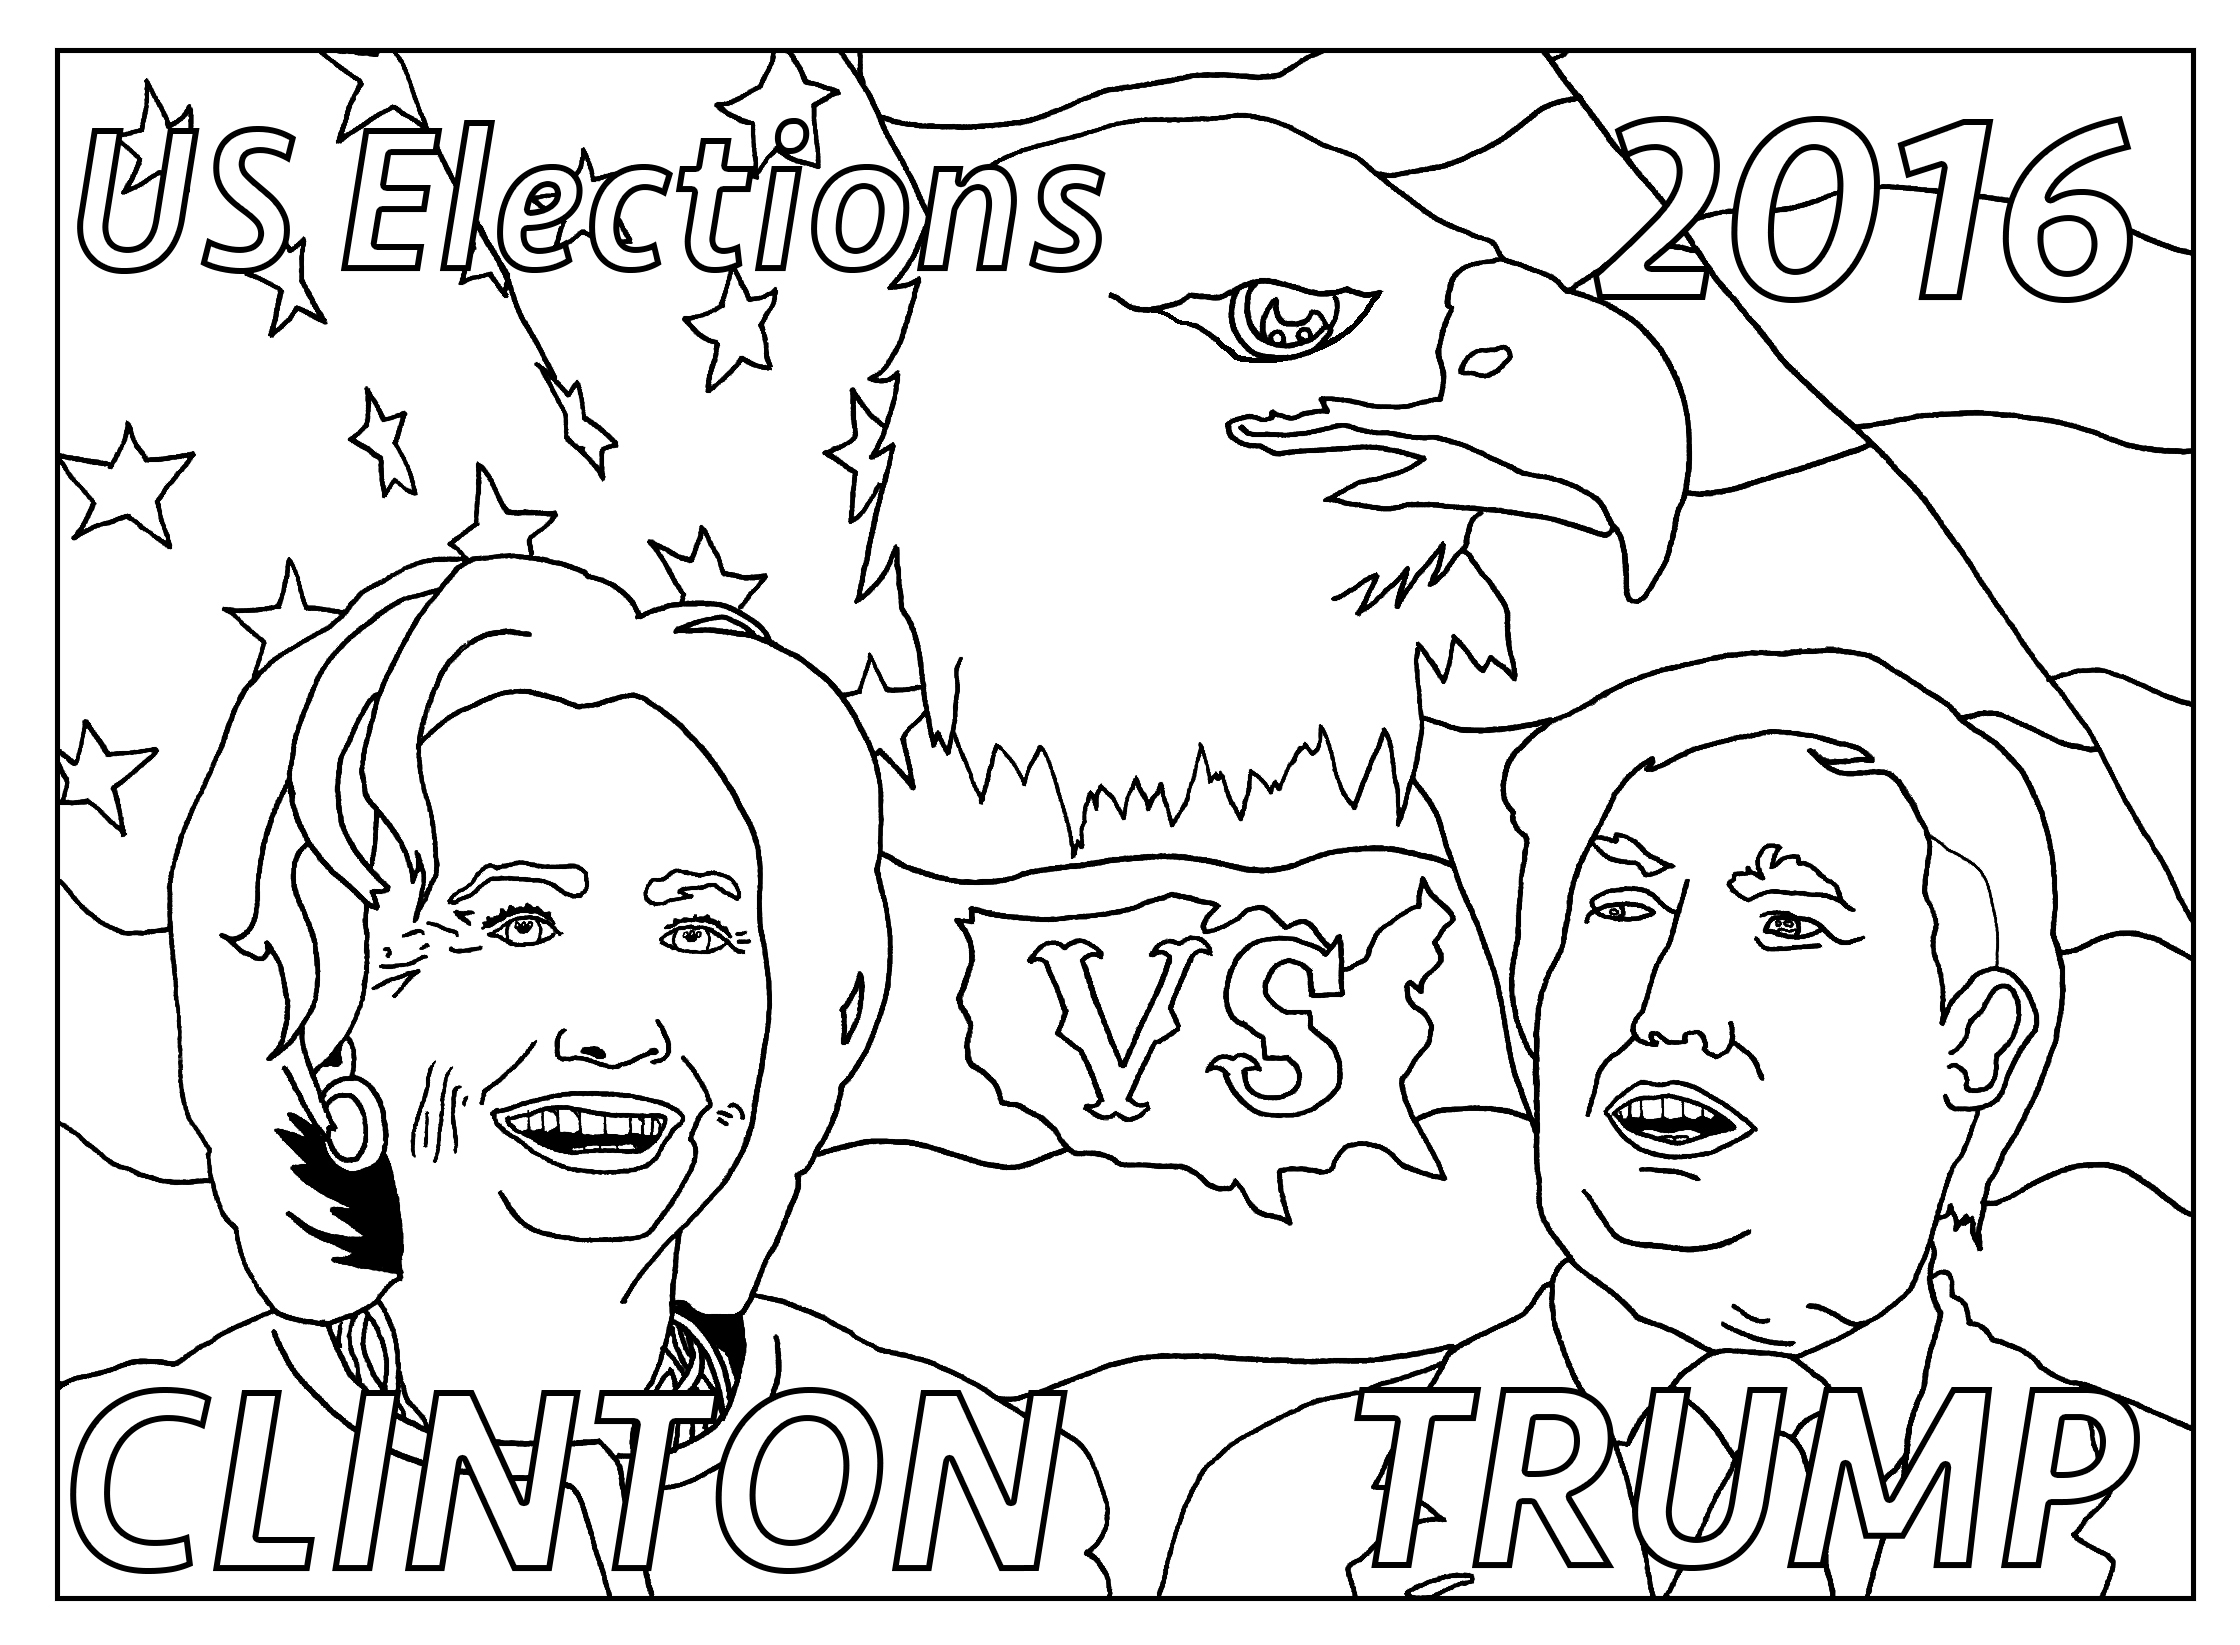 Special coloring page for the US Elections : Clinton vs Trump : version with text